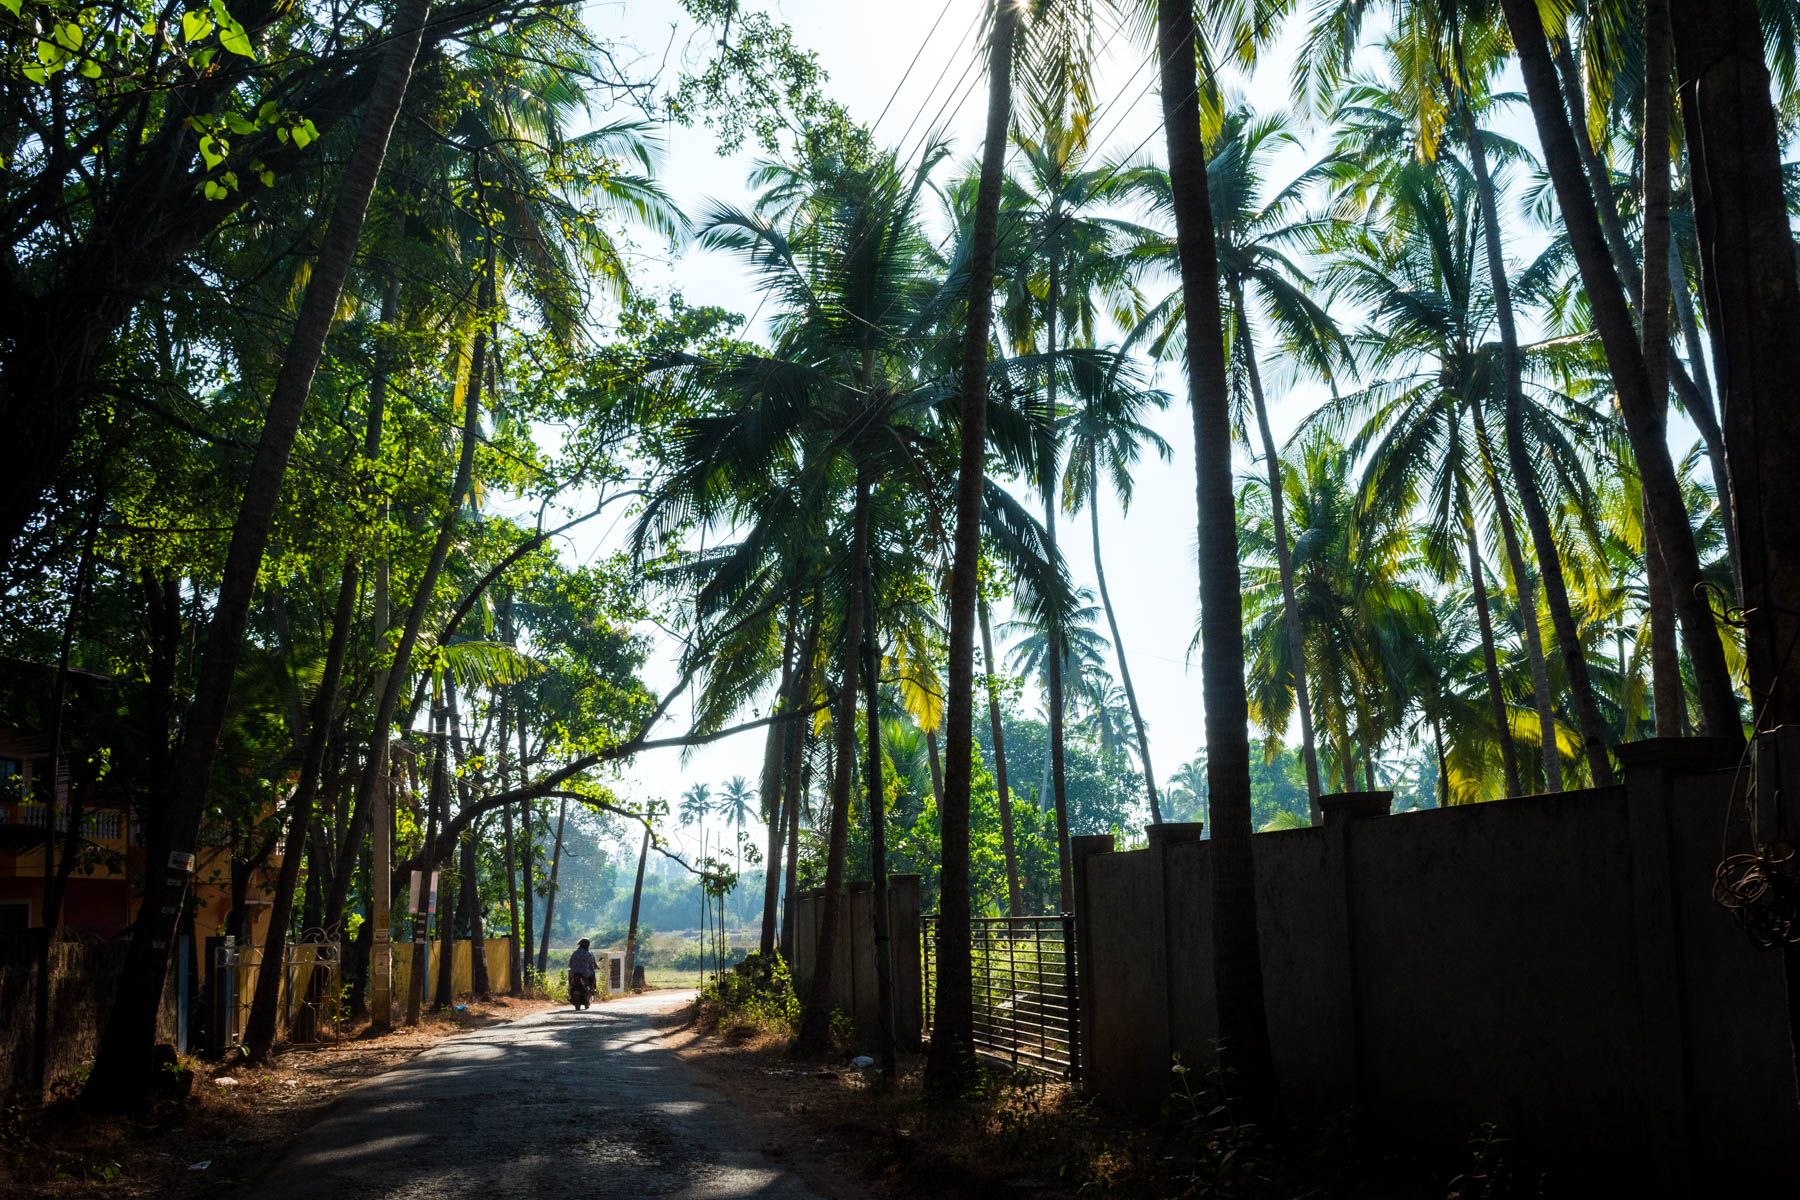 Guide to Christmas in Baga and Calangute in Goa, India - Motorbiking on Goa's winding, forested roads - Lost With Purpose